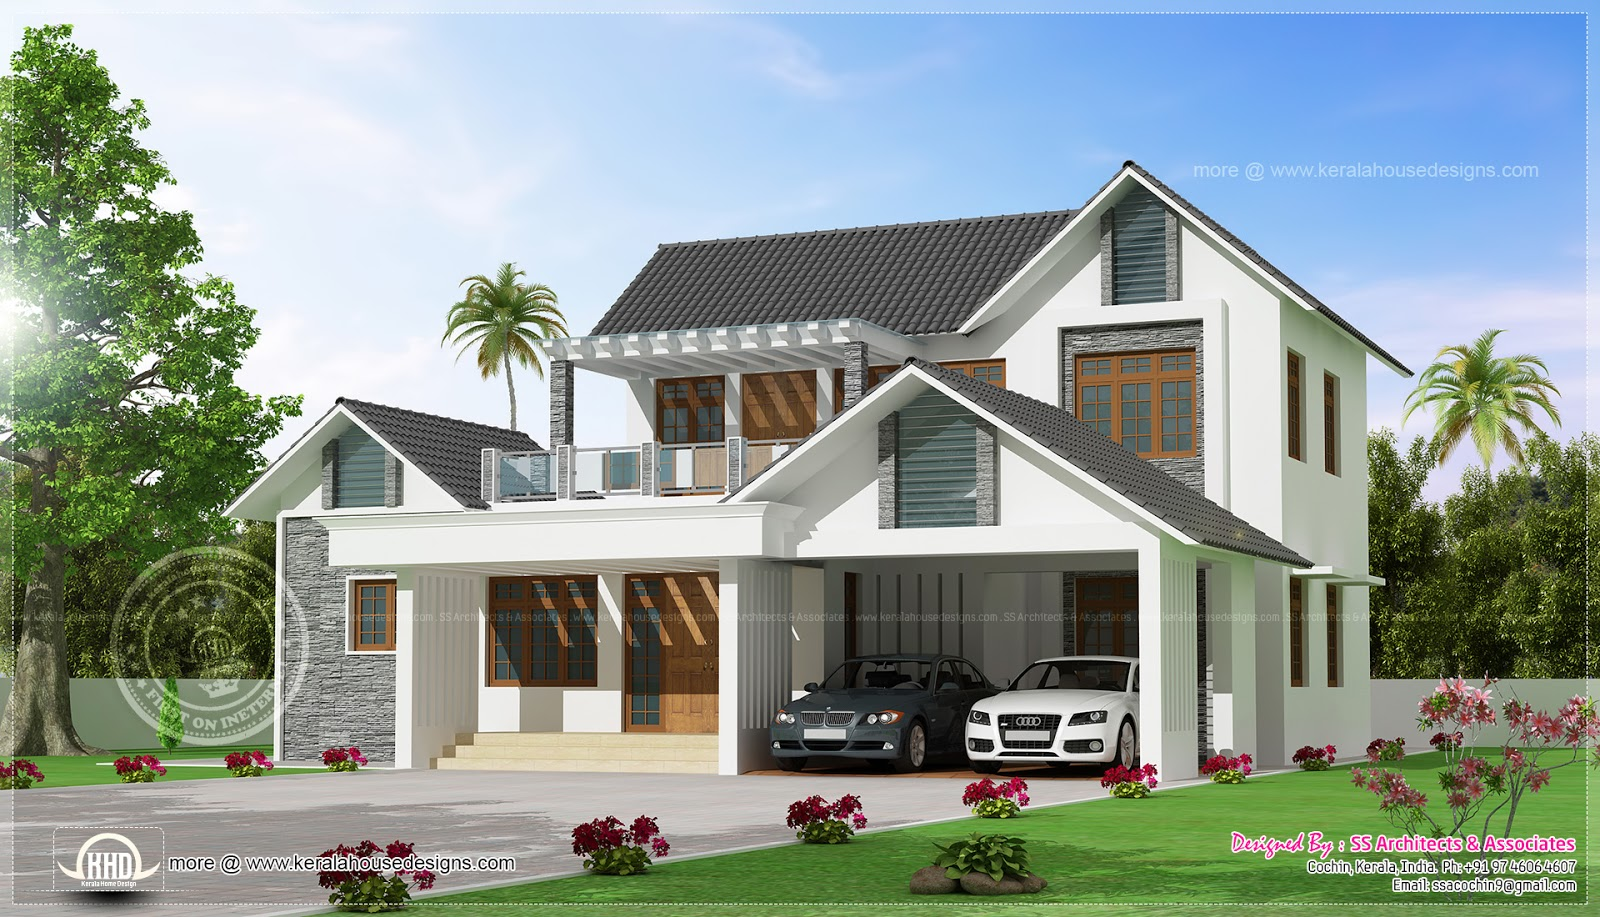 Awesome Modern Villa Exterior Elevation Kerala Home Design And Floor Plans